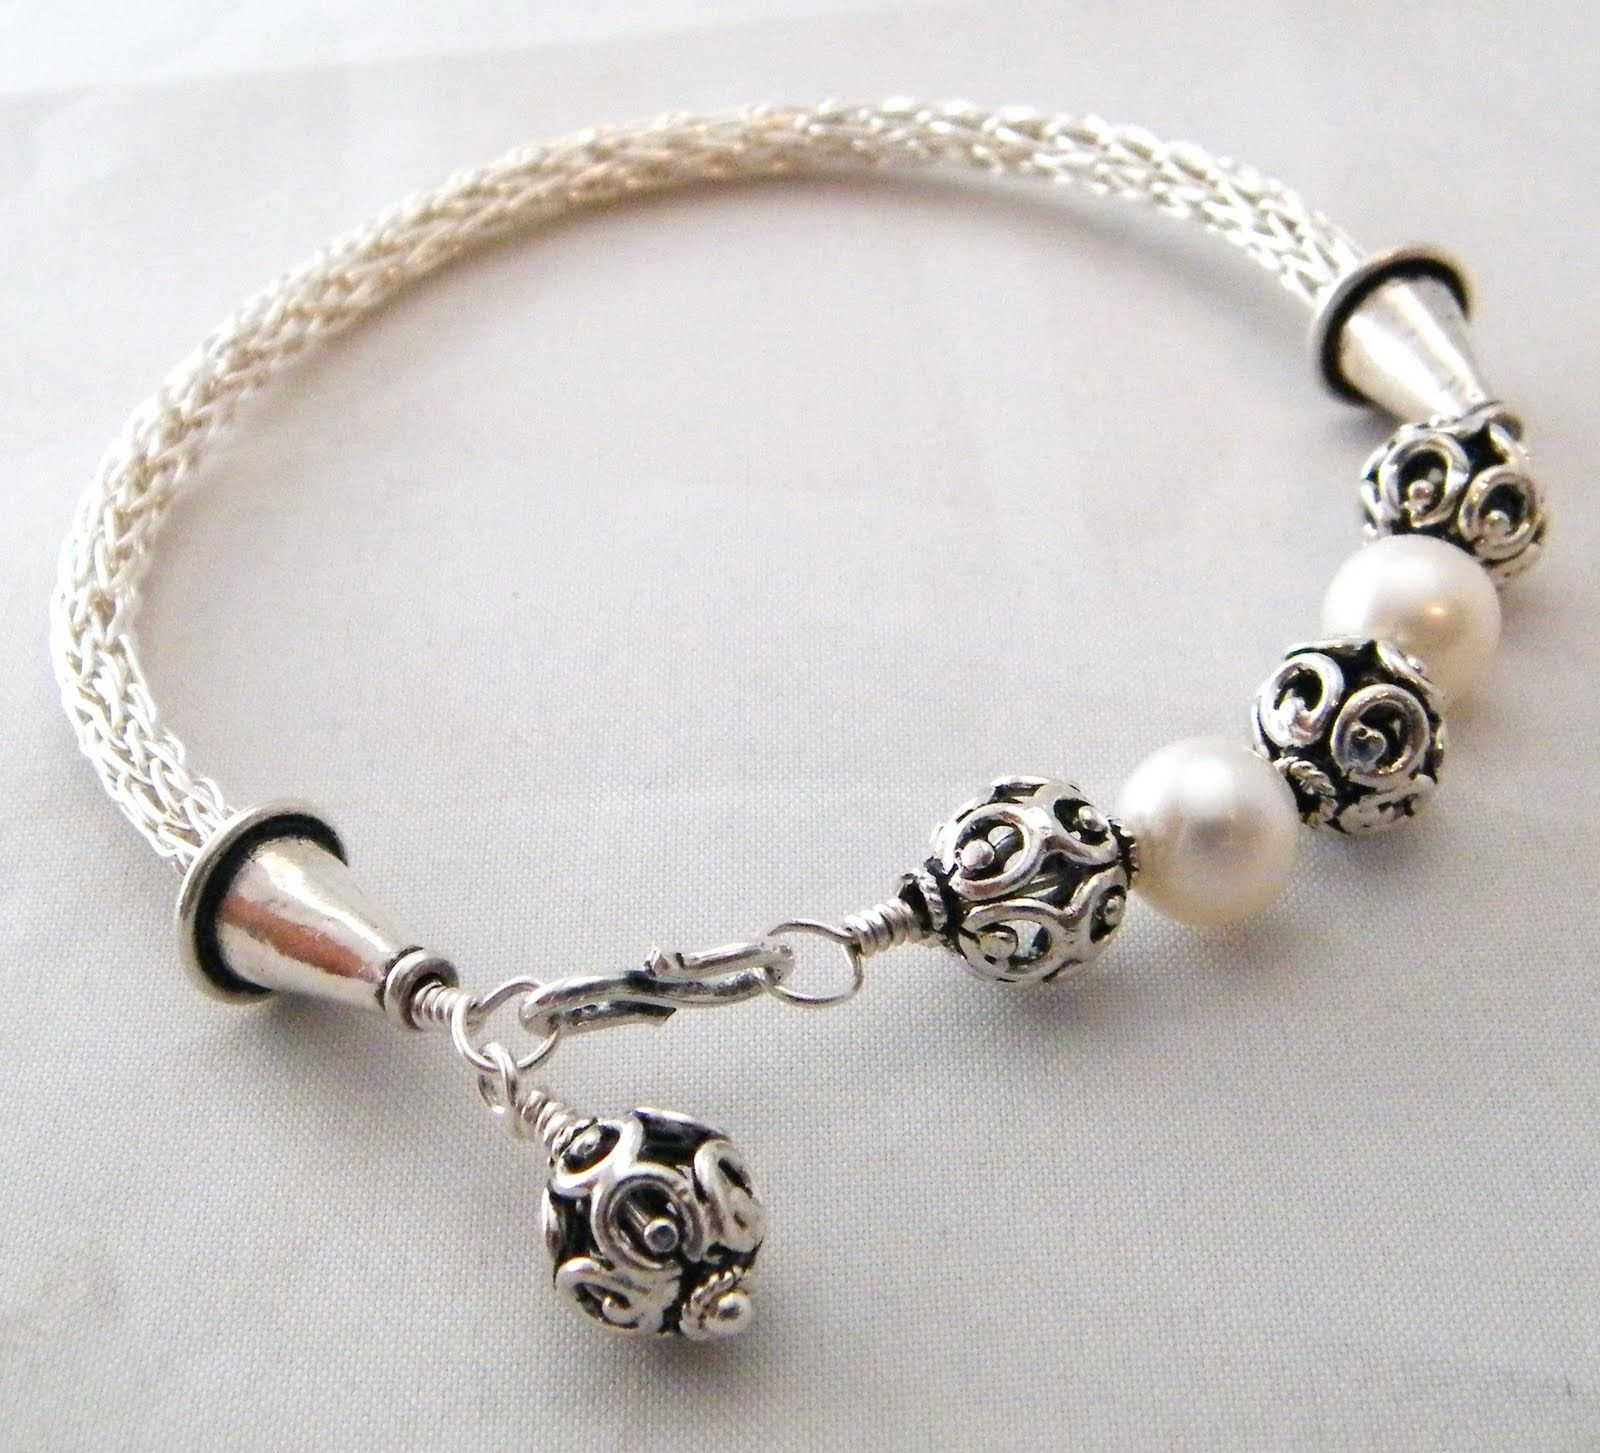 viking knit | Viking knit in fine silver with bali beads and AAA ...